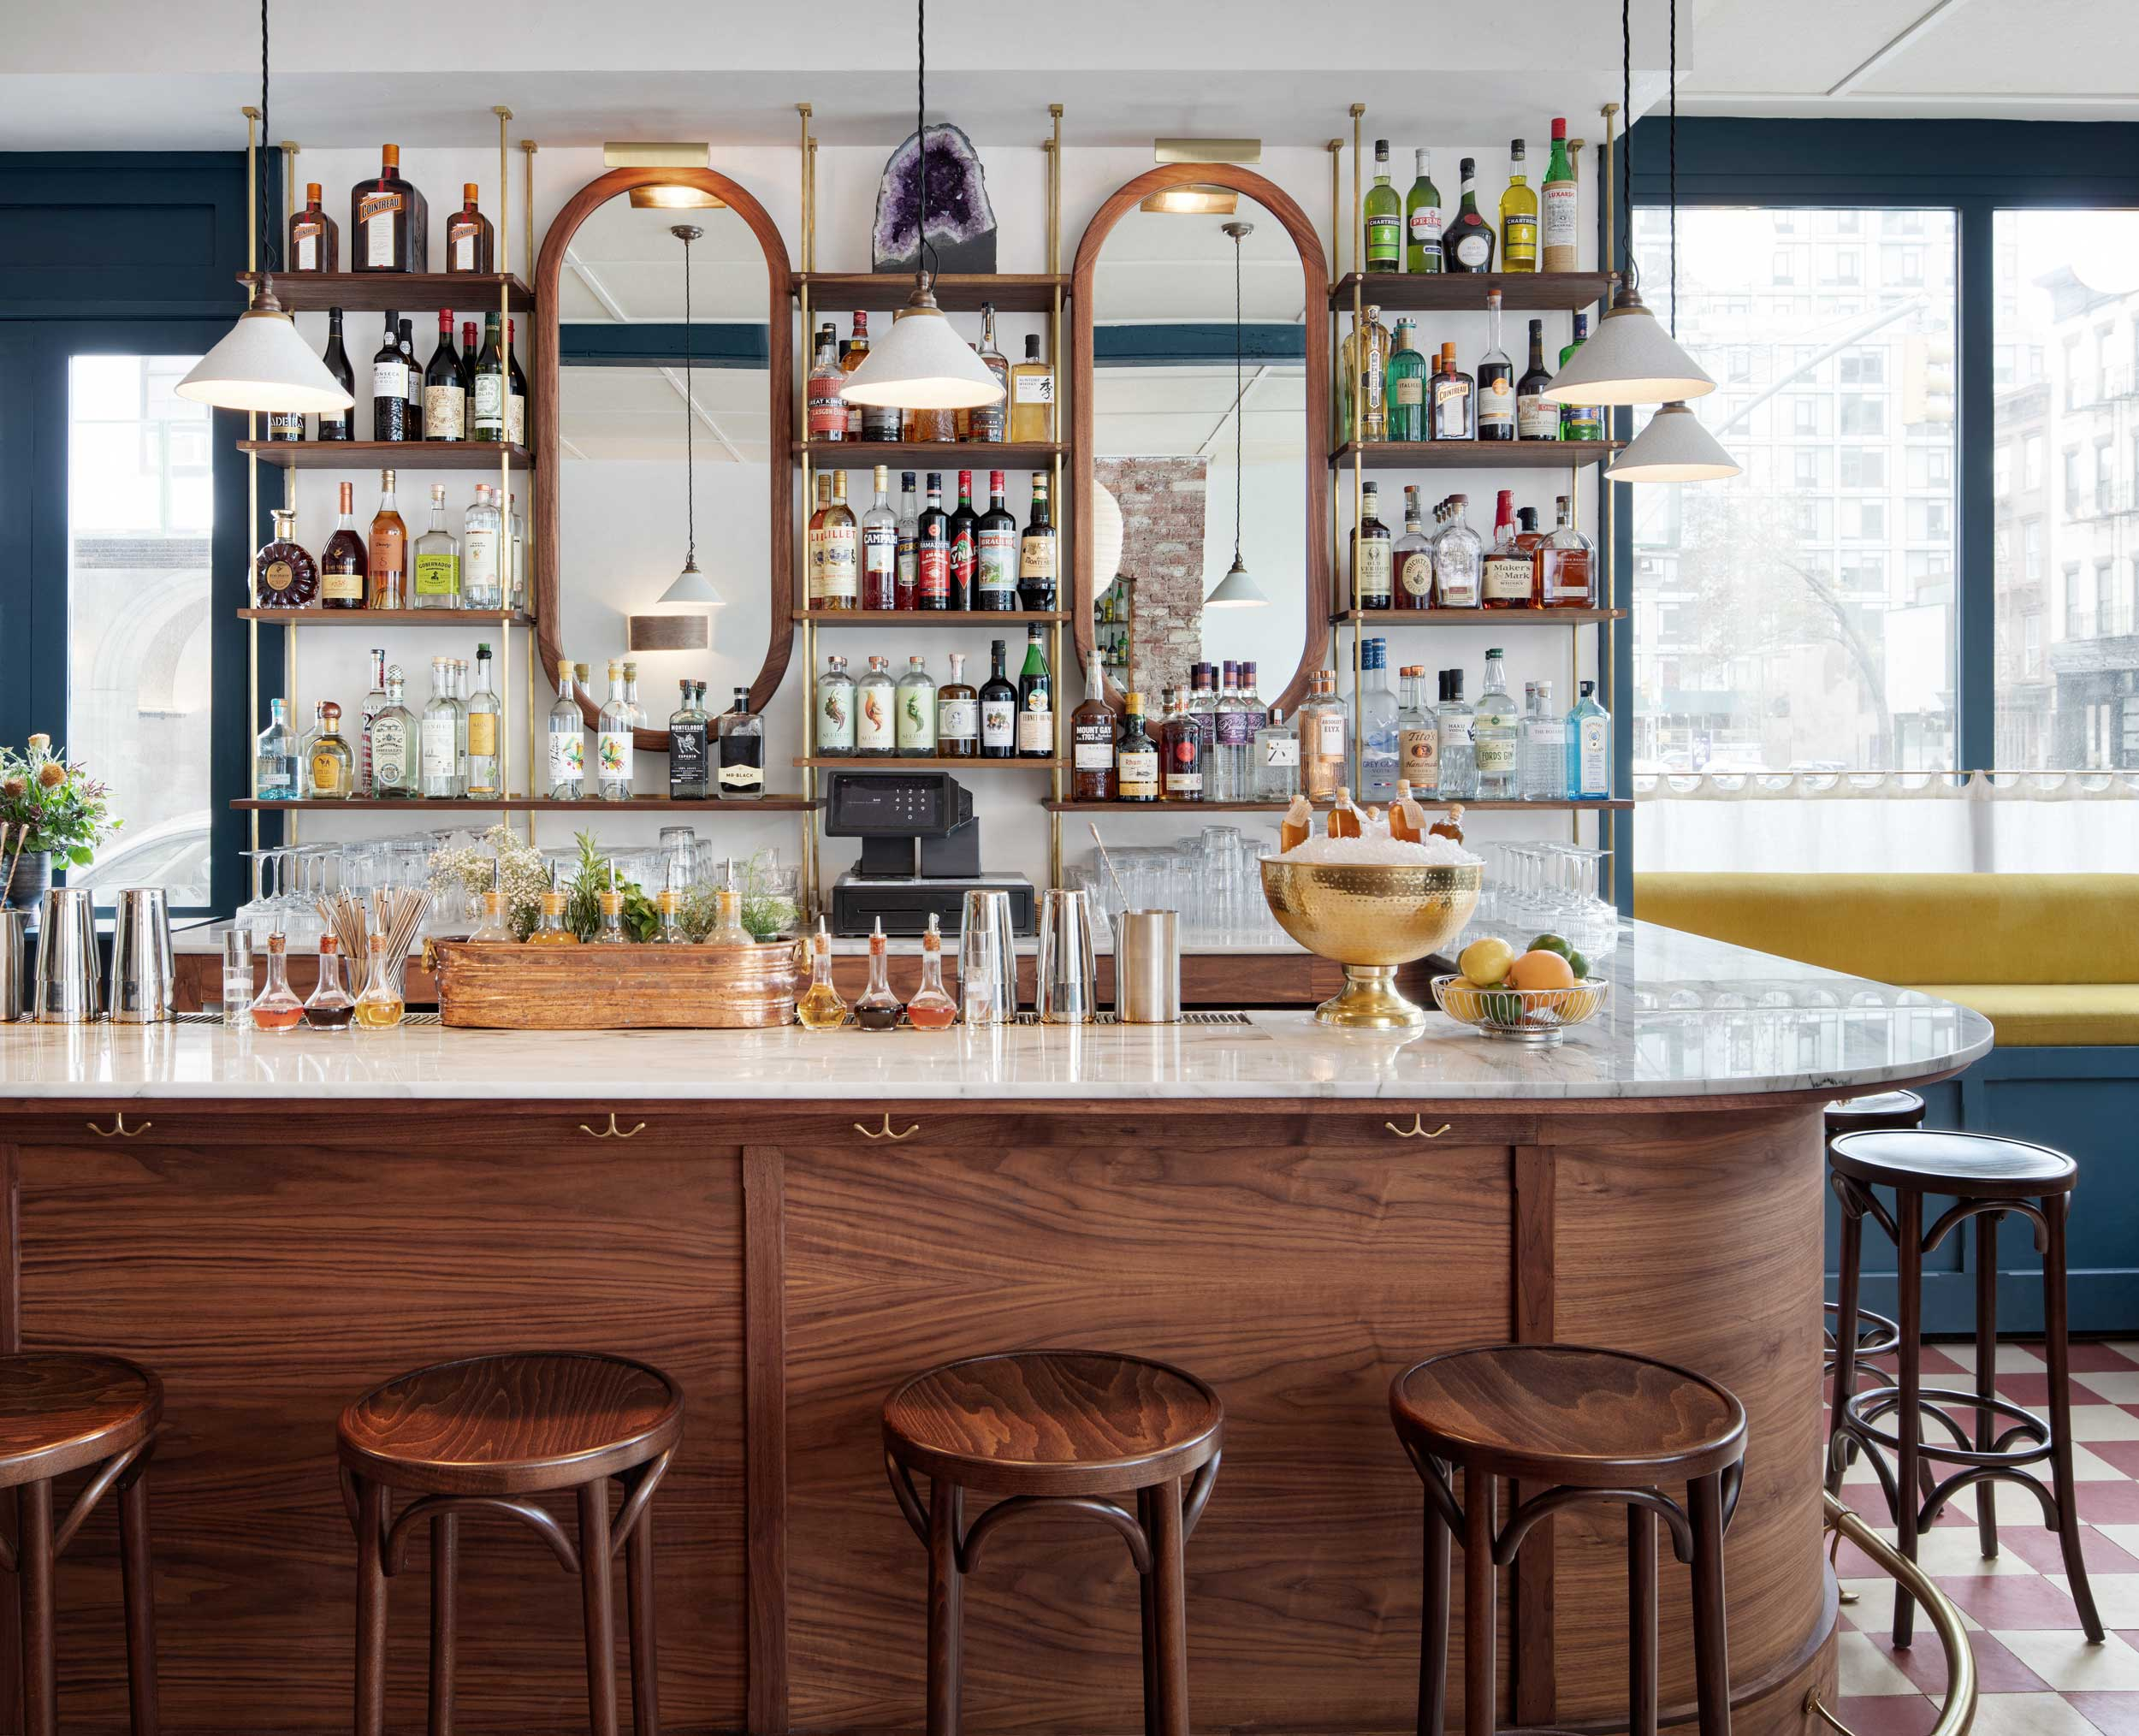 Bar Photography of The Orchard Townhouse Restaurant